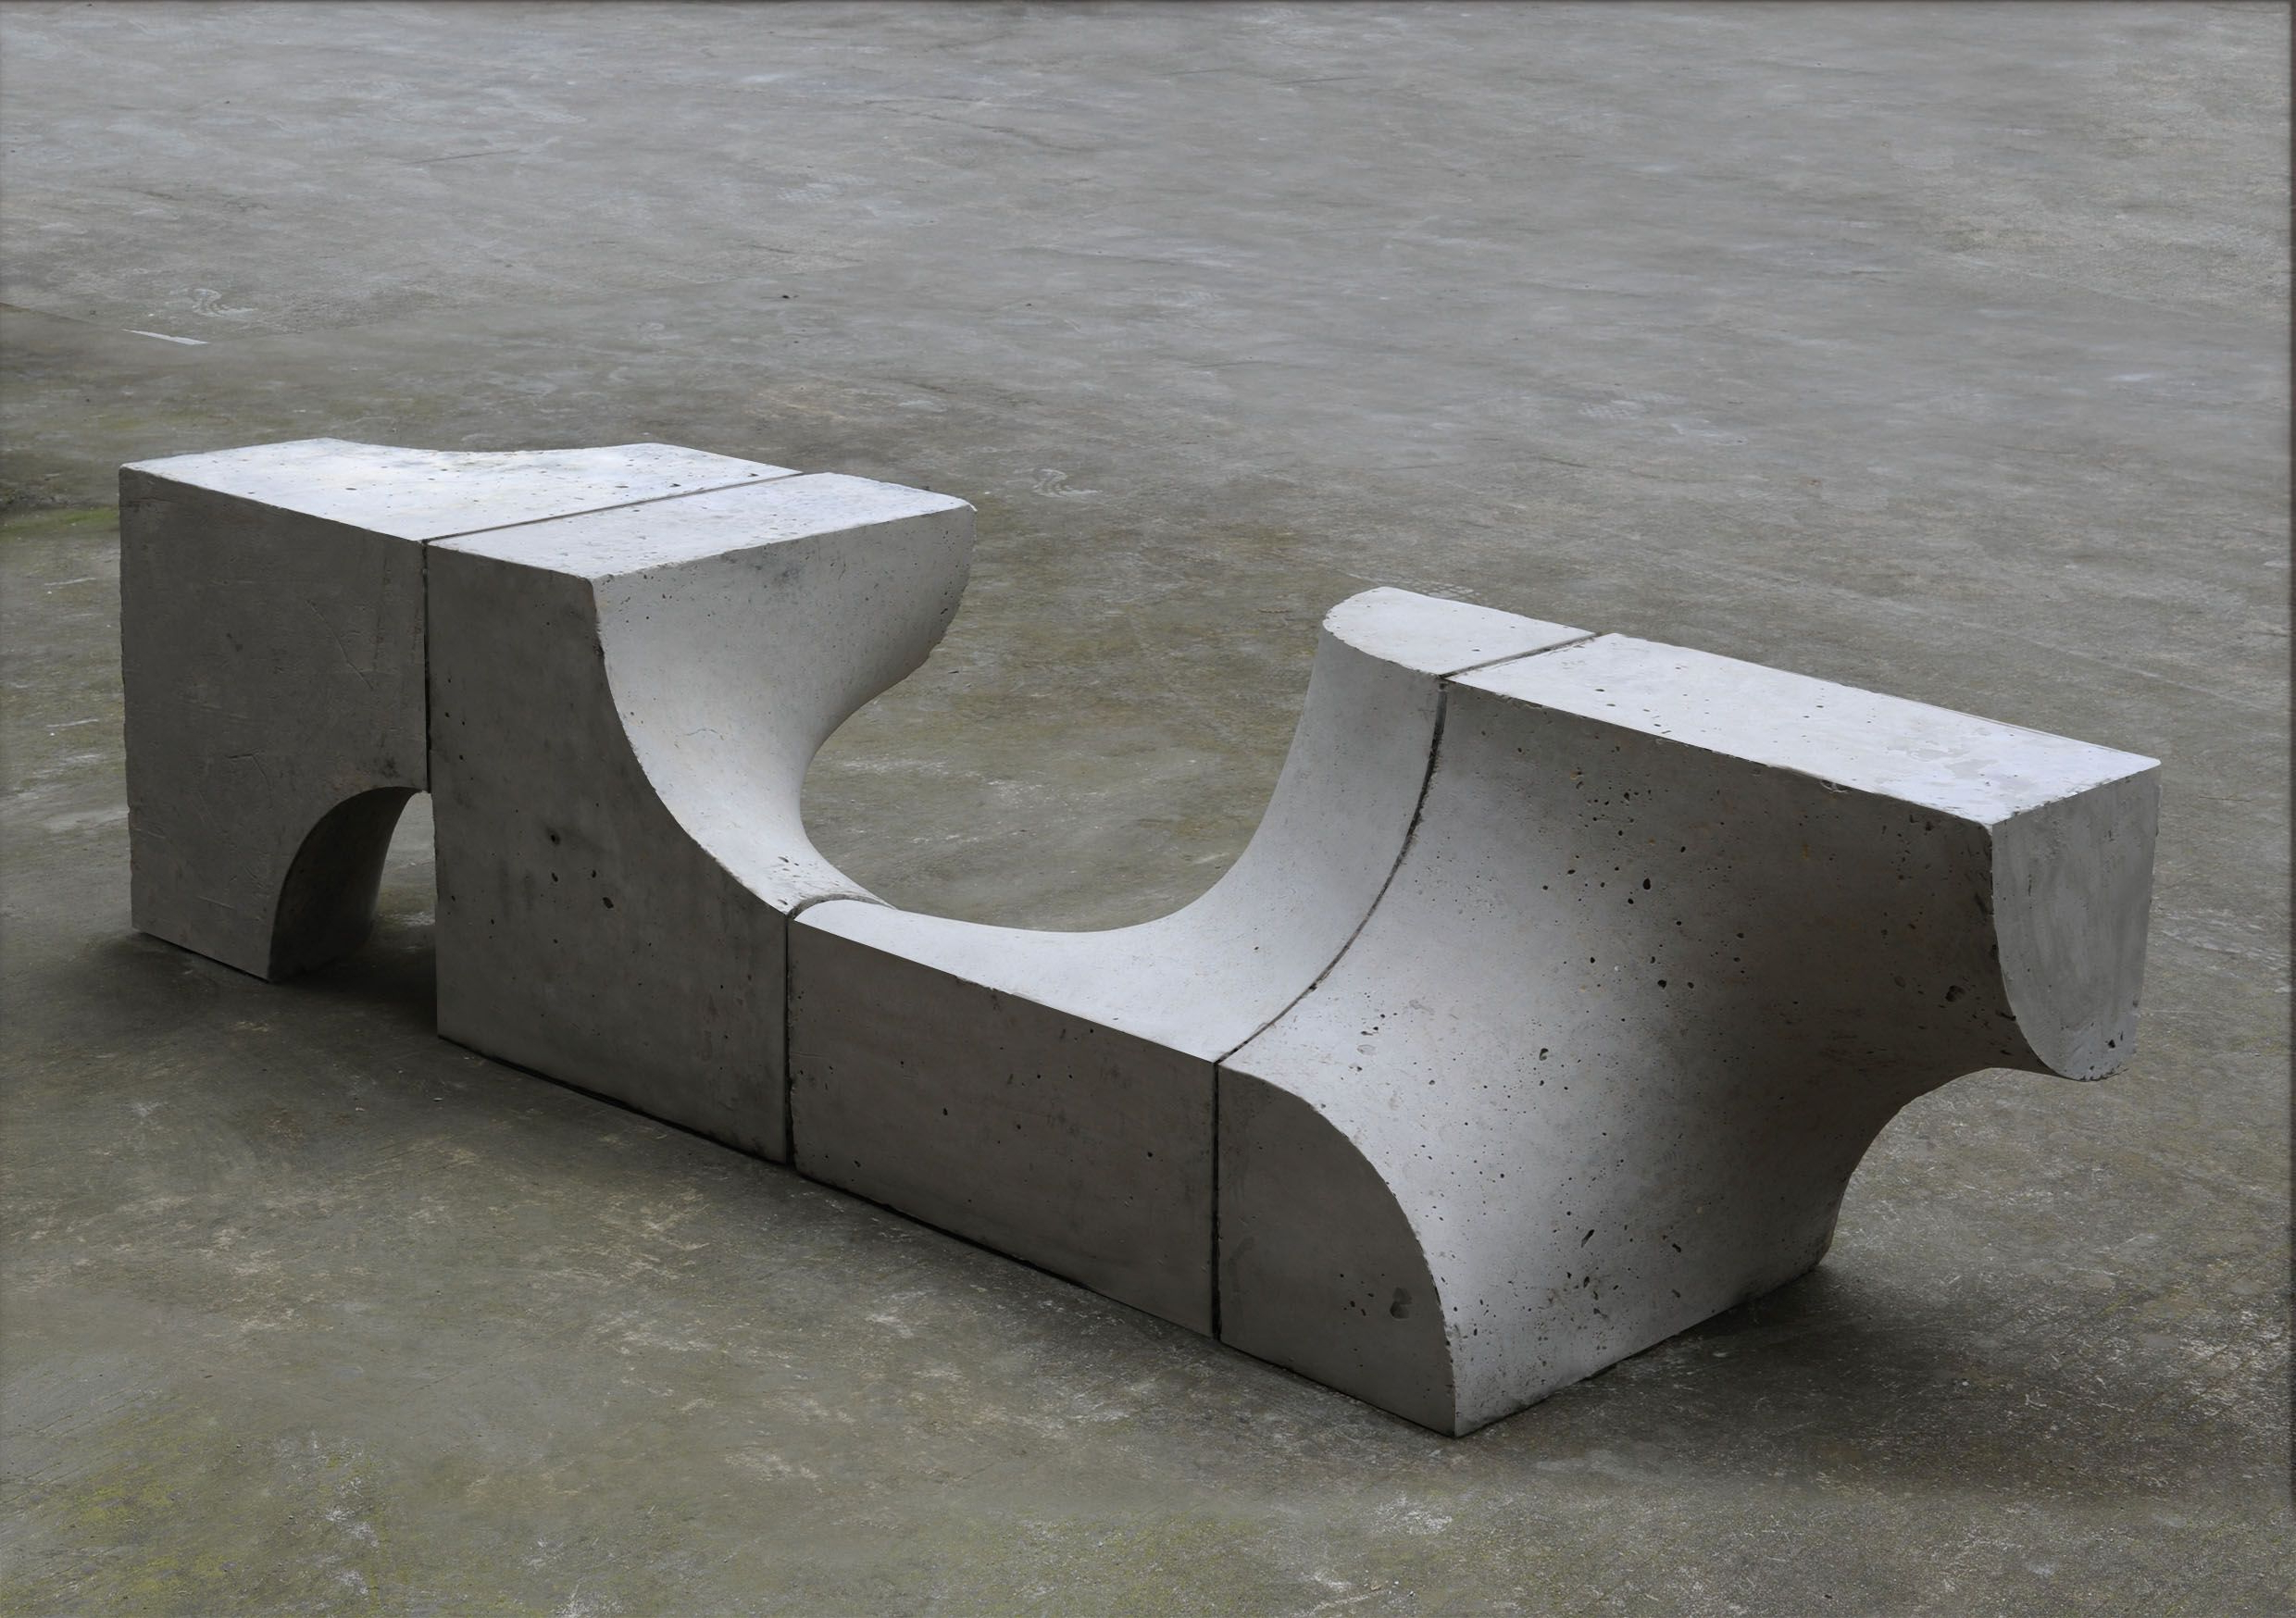 Cement Benches For Square Garden (View 29 of 30)